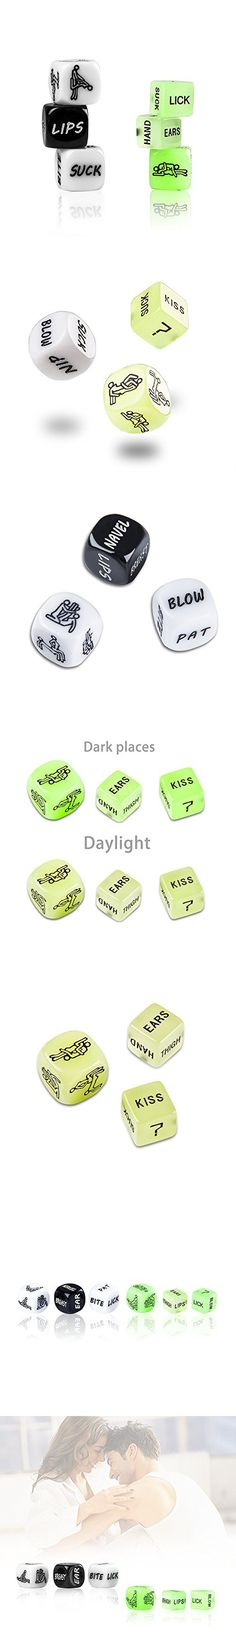 IManson Funny Dice Love Dice Game Toy for Bachelor Party Couple Gift Set of 6